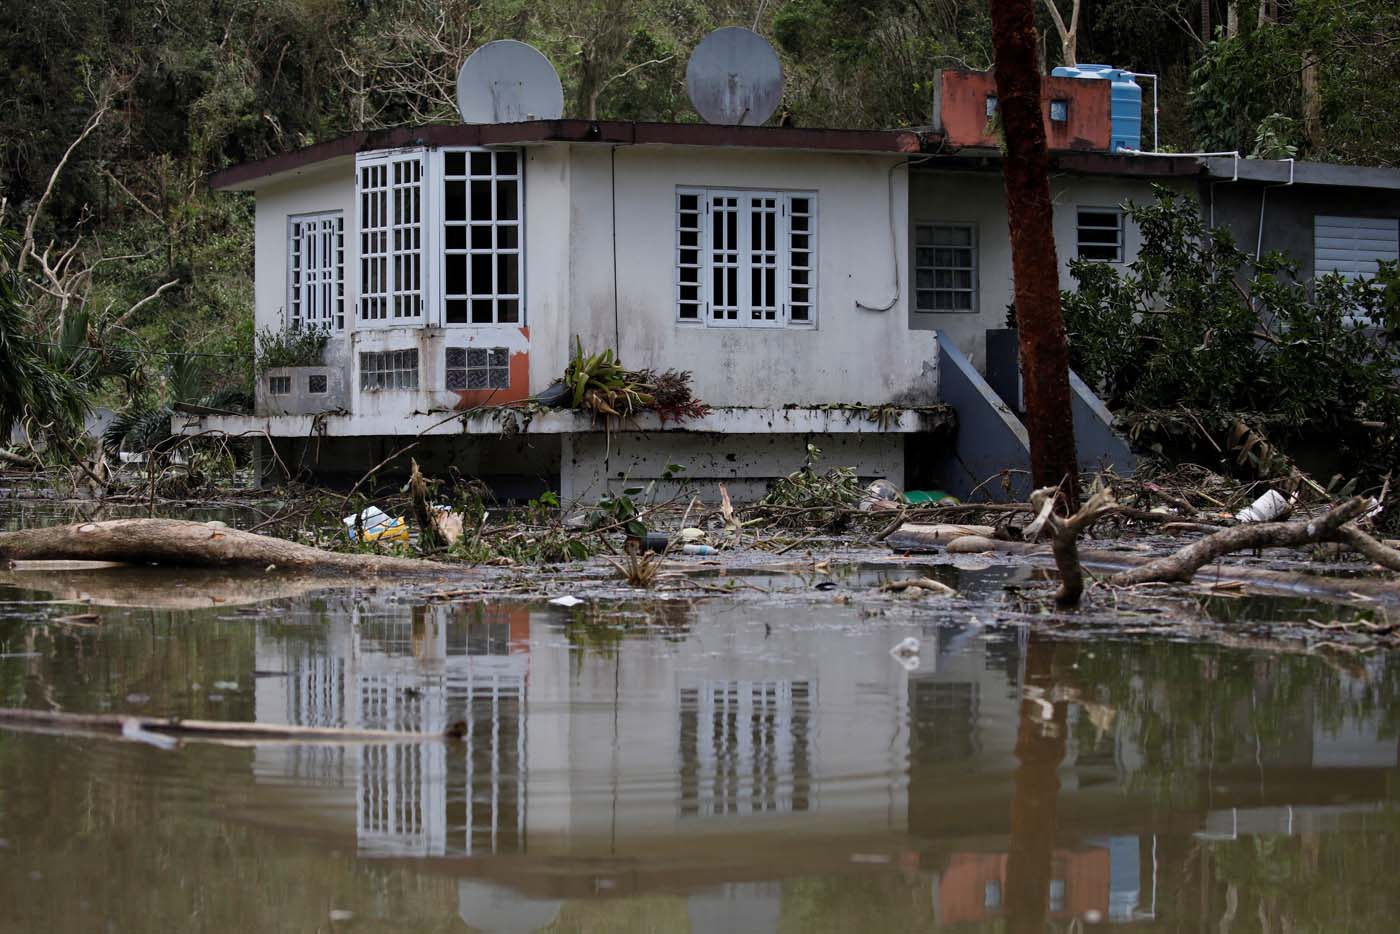 A house submerged by flood waters is seen close to the dam of the Guajataca lake after the area was hit by Hurricane Maria in Guajataca, Puerto Rico September 23, 2017. REUTERS/Carlos Garcia Rawlins